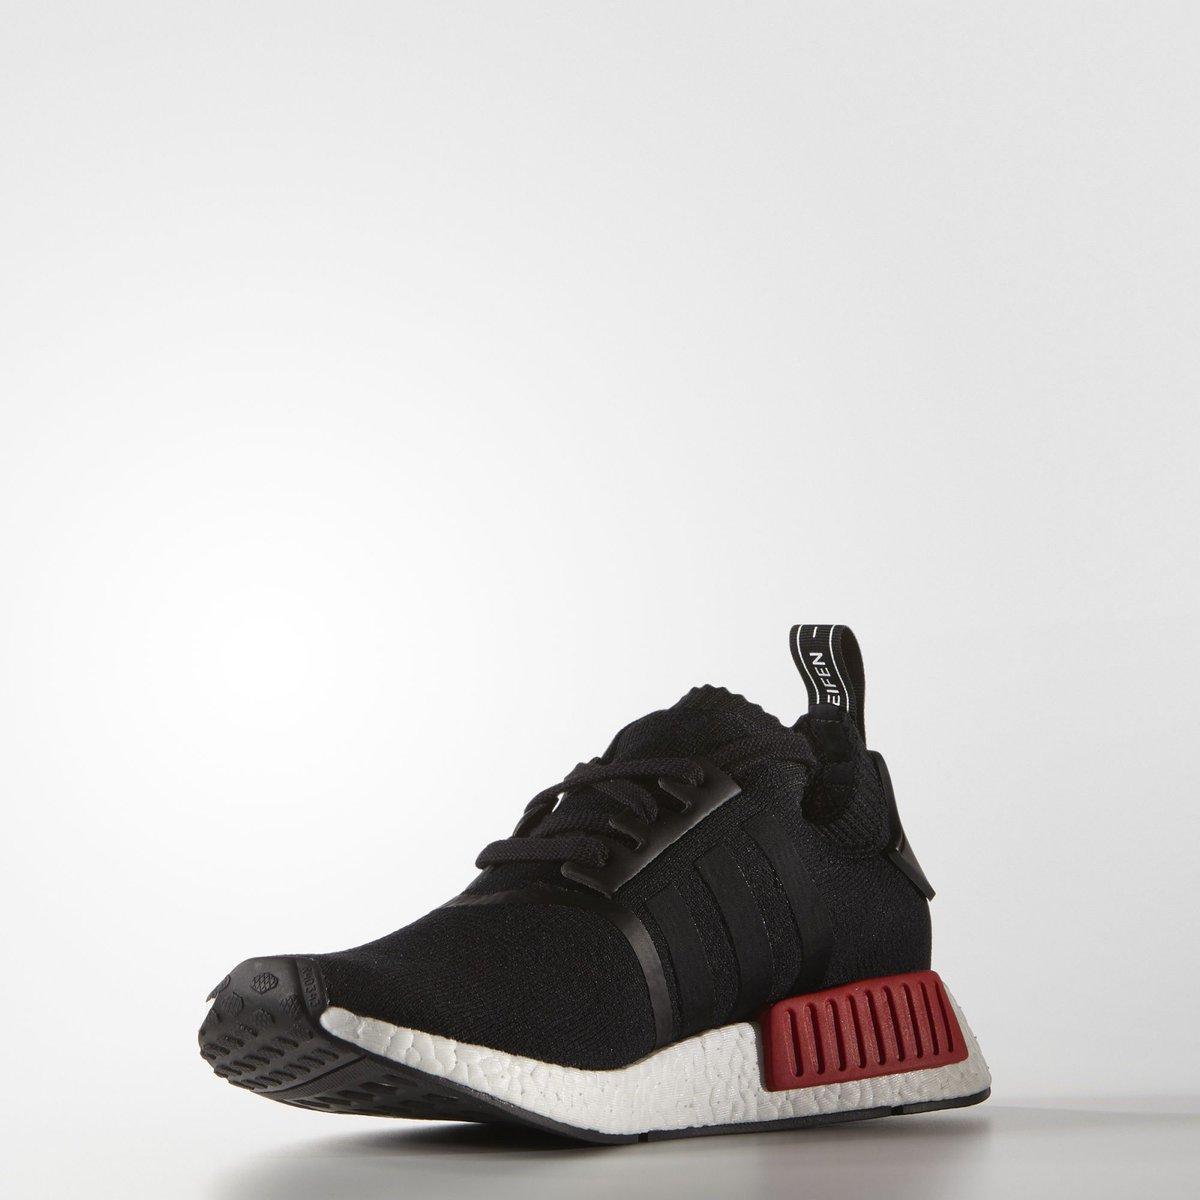 Adidas NMD R1 Runner Primeknit PK OG Black US: 8, 5 EU: 42 UK: 8